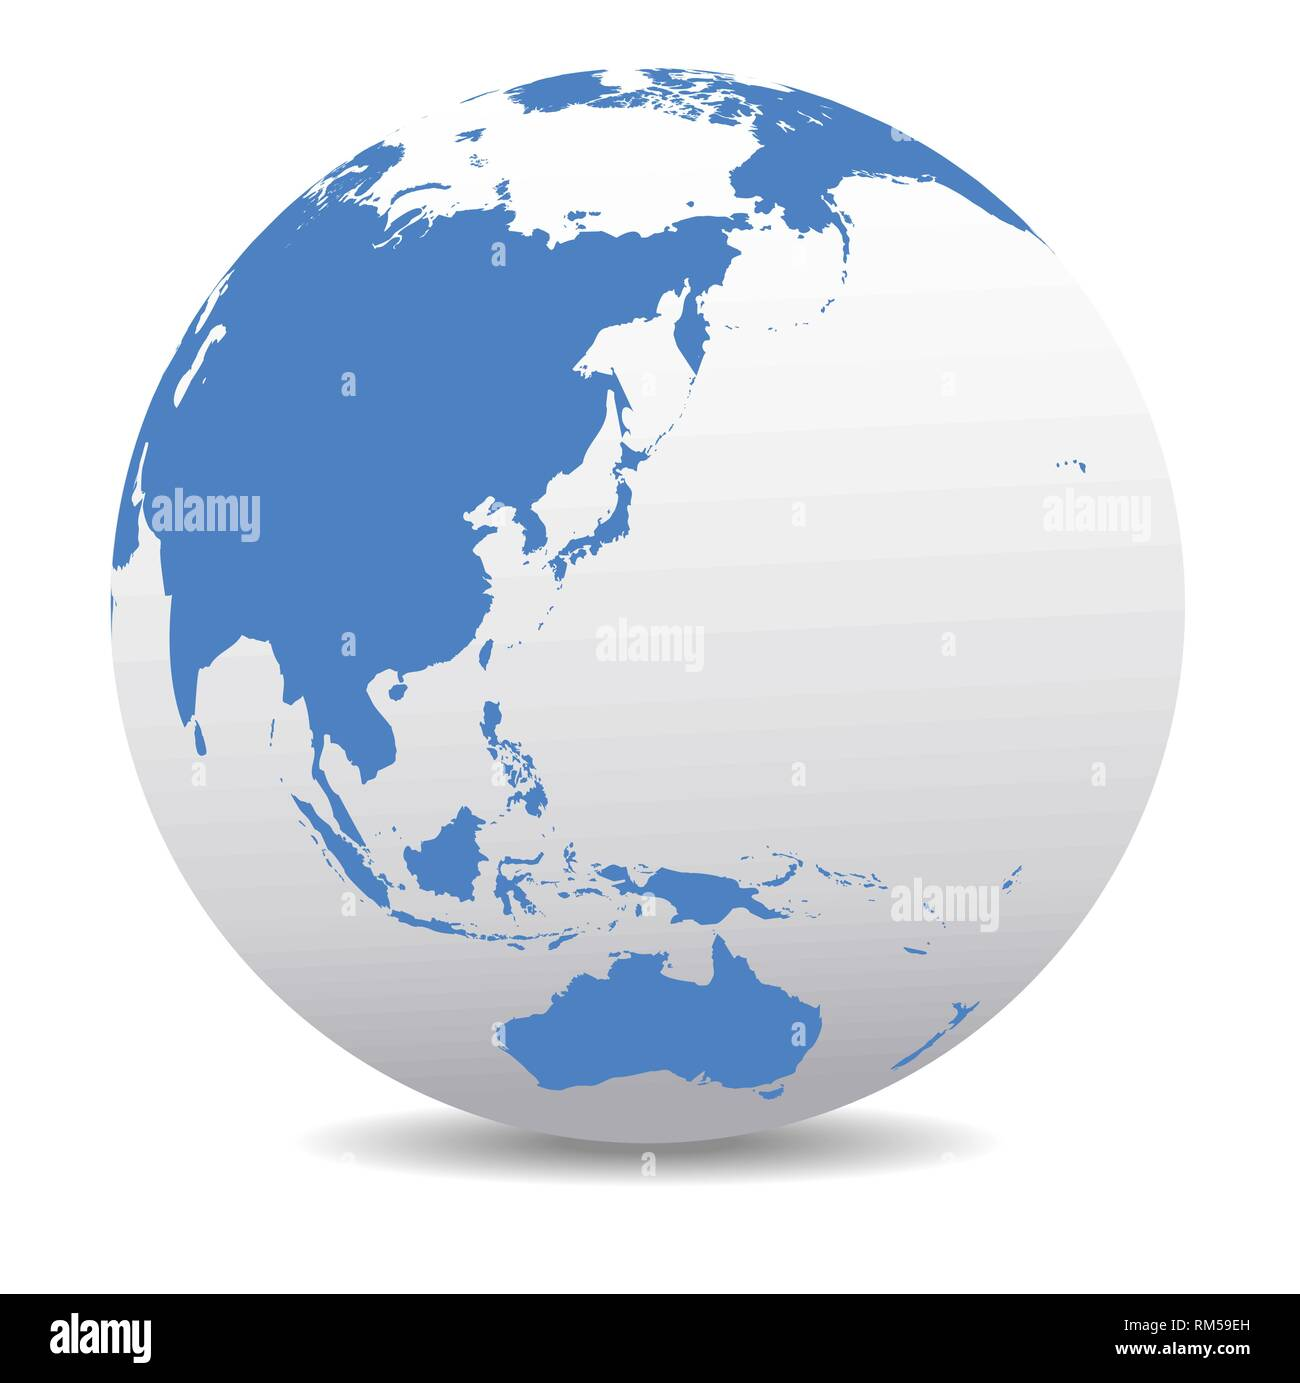 Australia Map Globe.China Japan Malaysia Thailand Indonesia Australia Global World